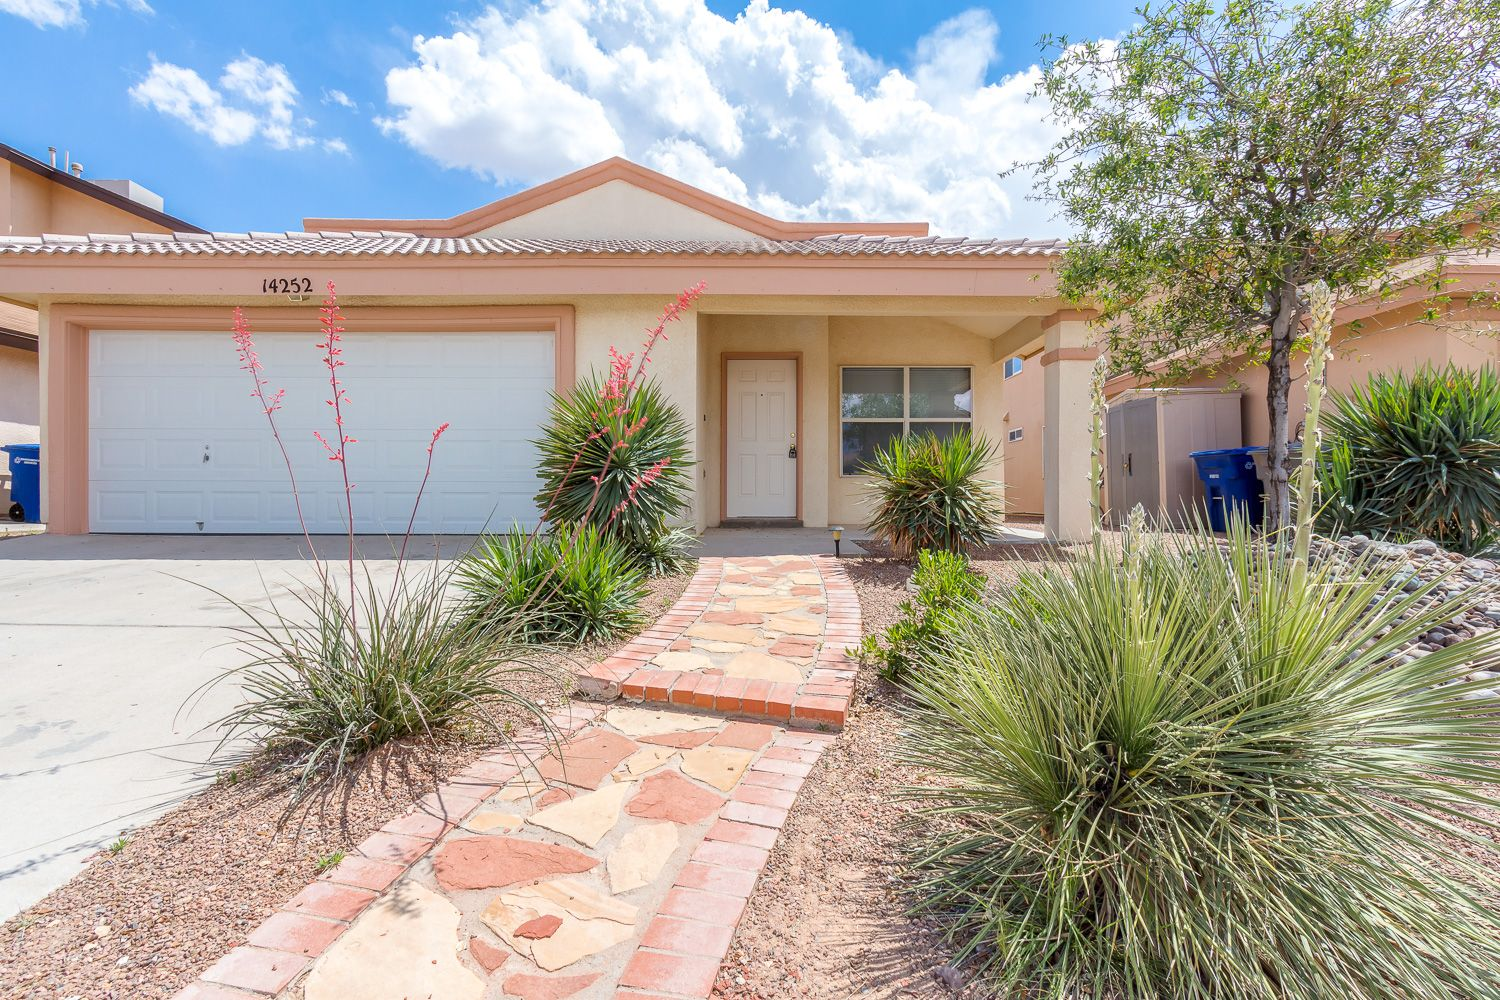 Beautiful Eastside Home For Rent 4 Bedrooms 2 Bath 14252 Spanish Point El Paso Tx 79938 El Paso Renting A House Rent